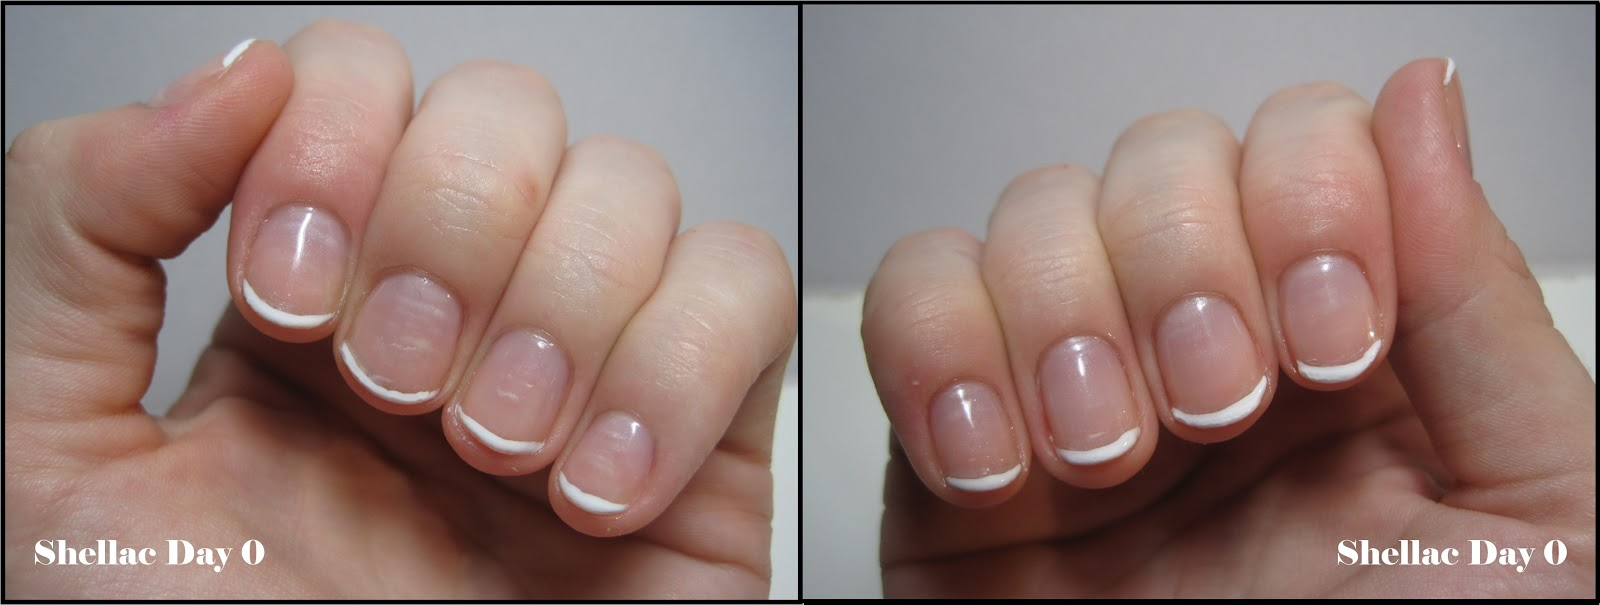 These were my nails on Wednesday, day zero of my Shellac manicure.